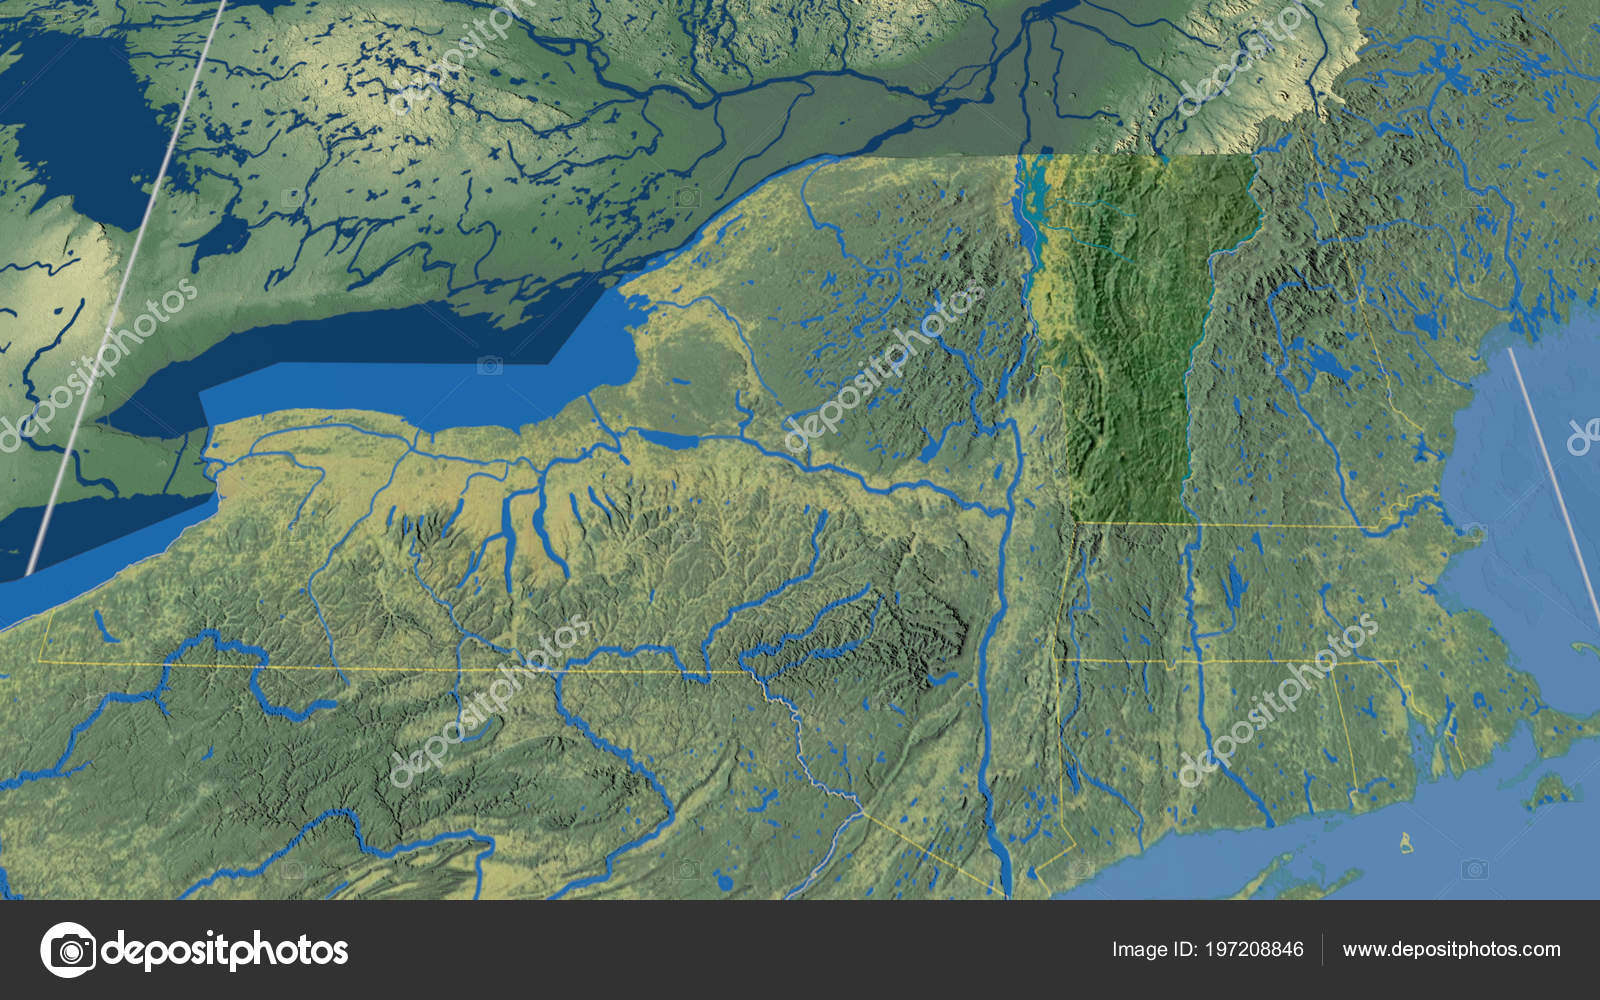 Topographic Map Vermont.Vermont Region United States Outlined Topographic Map Stock Photo